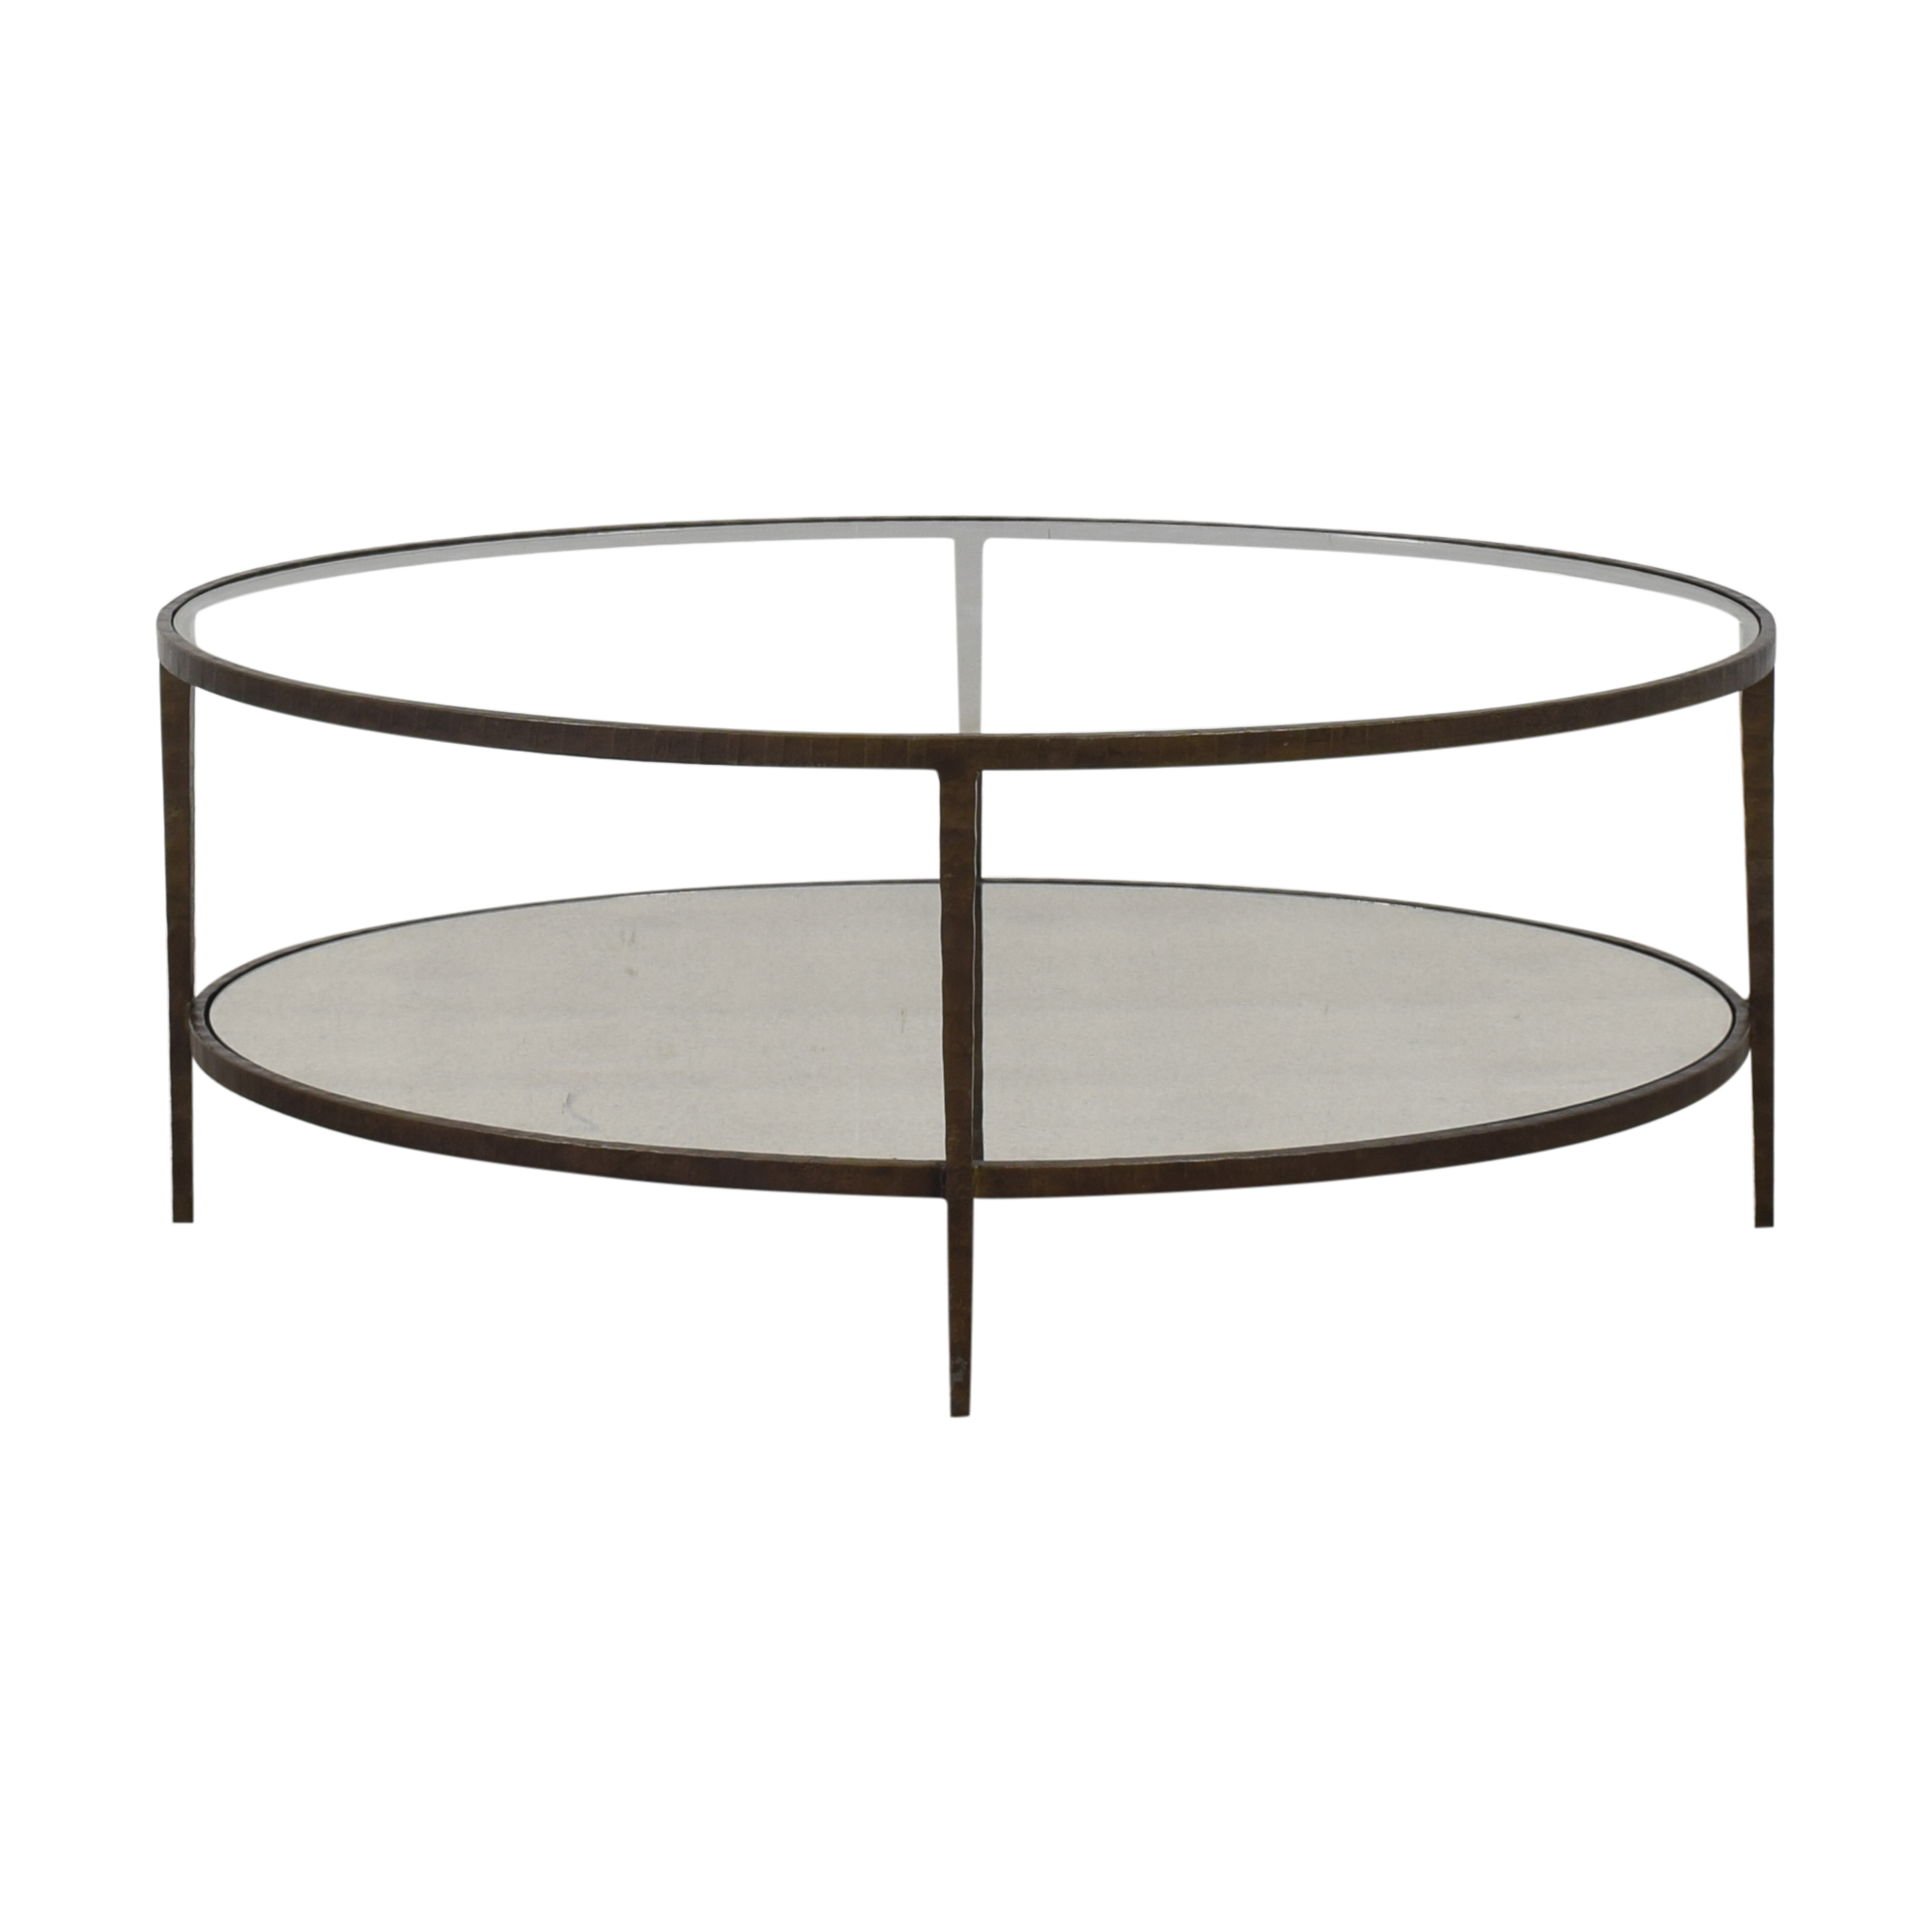 Crate & Barrel Crate & Barrel Clairemont Coffee Table discount